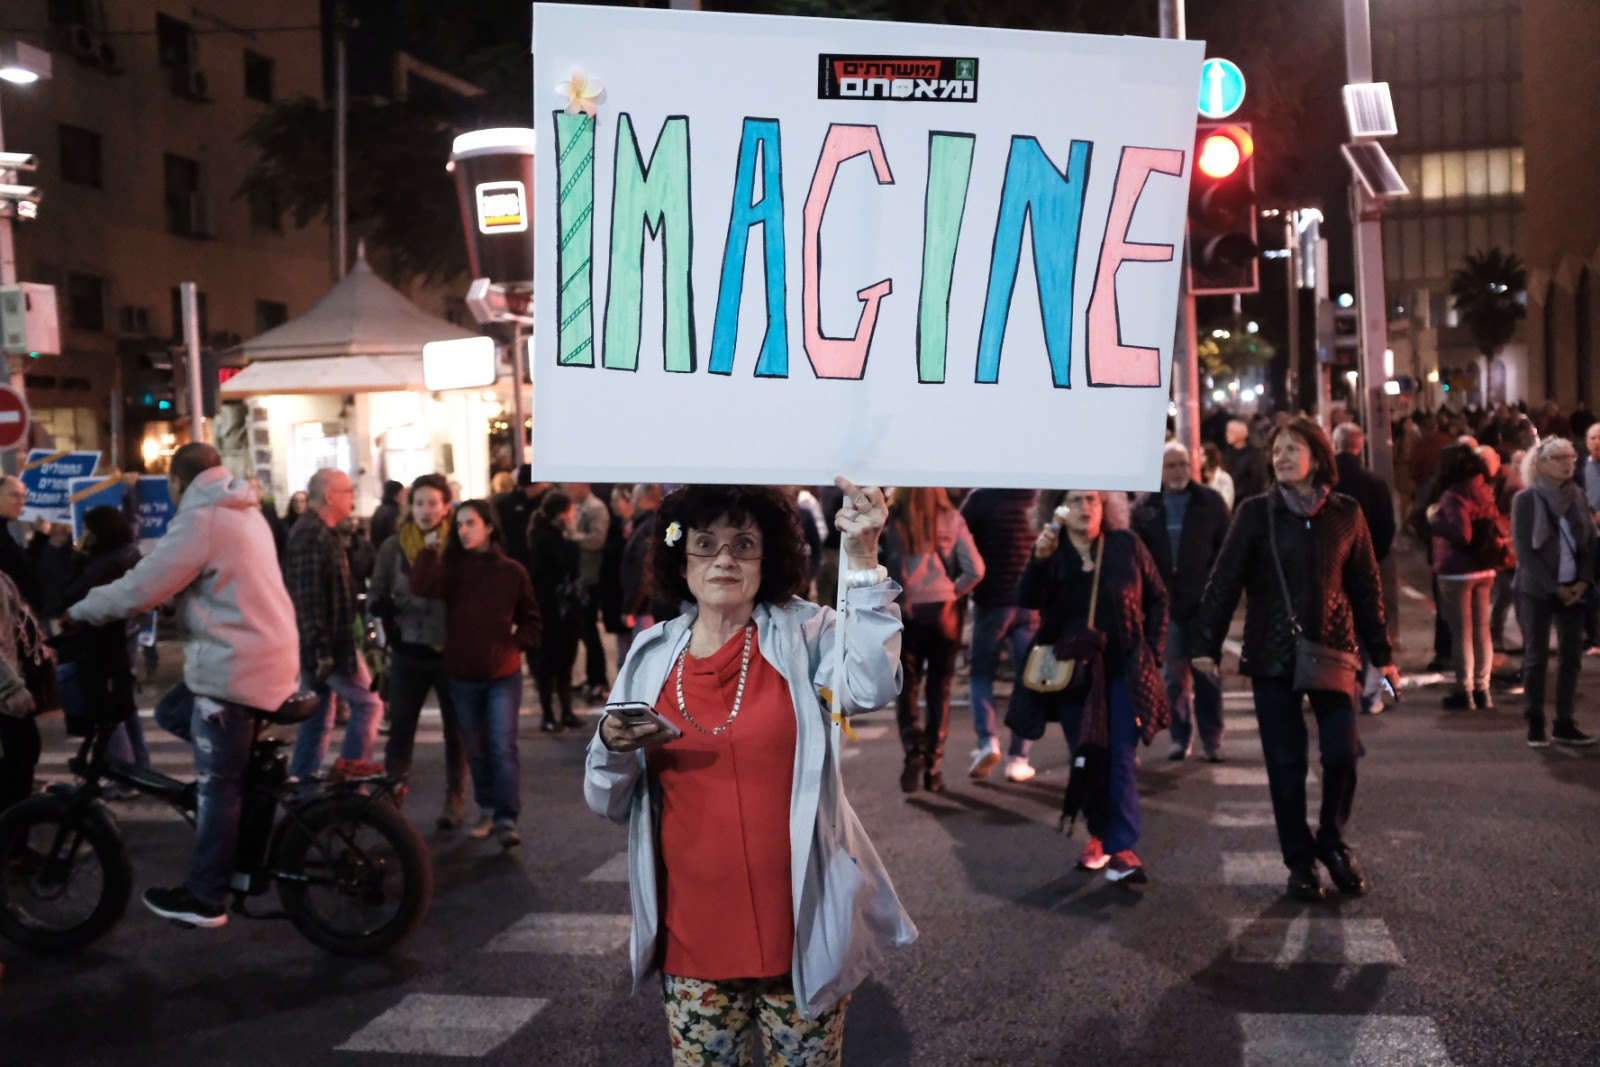 'Our Image of the Week is Israelis attending a rally in Tel Aviv against what they claim is the corruption of the government, 9 December 2017. Photo by Tomer Neuberg.' from the web at 'http://fathomjournal.org/wp-content/uploads/2017/12/image-of-week-11-dec.jpg'